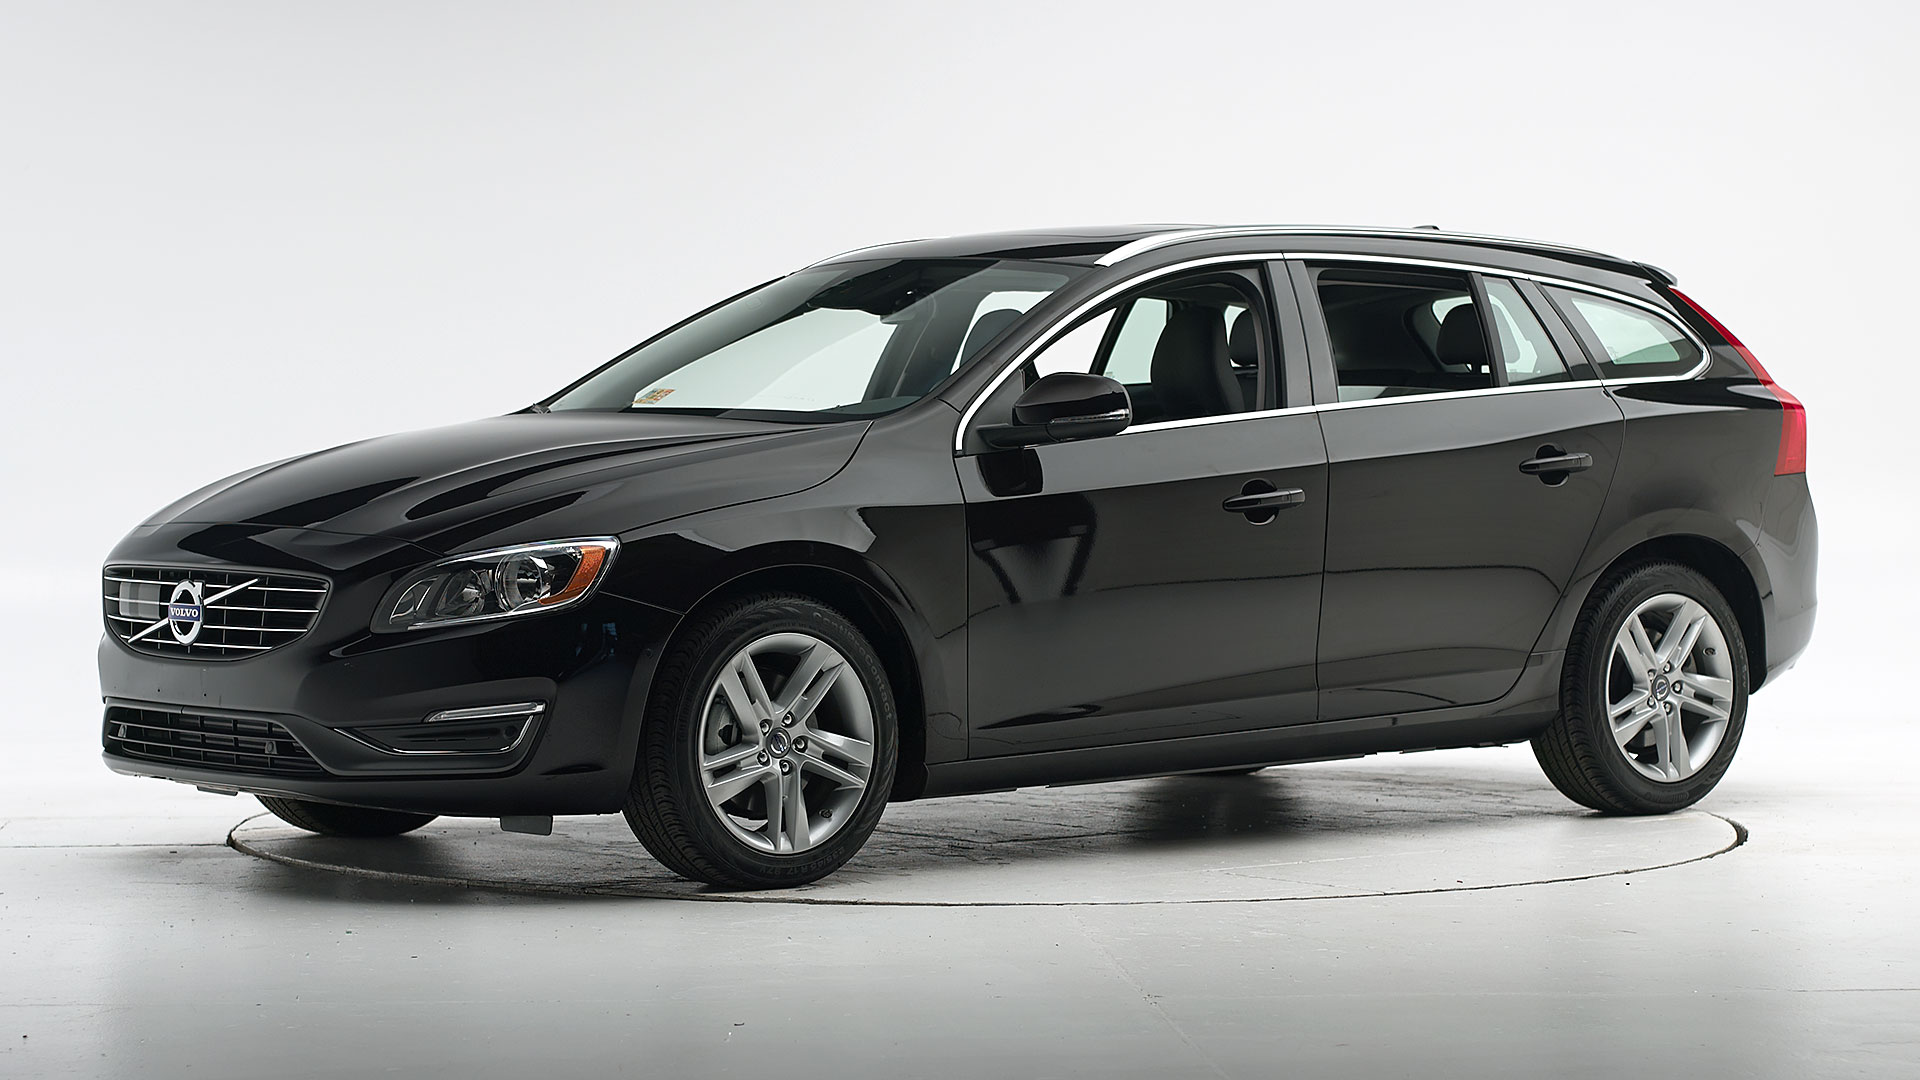 2017 Volvo V60 4-door wagon